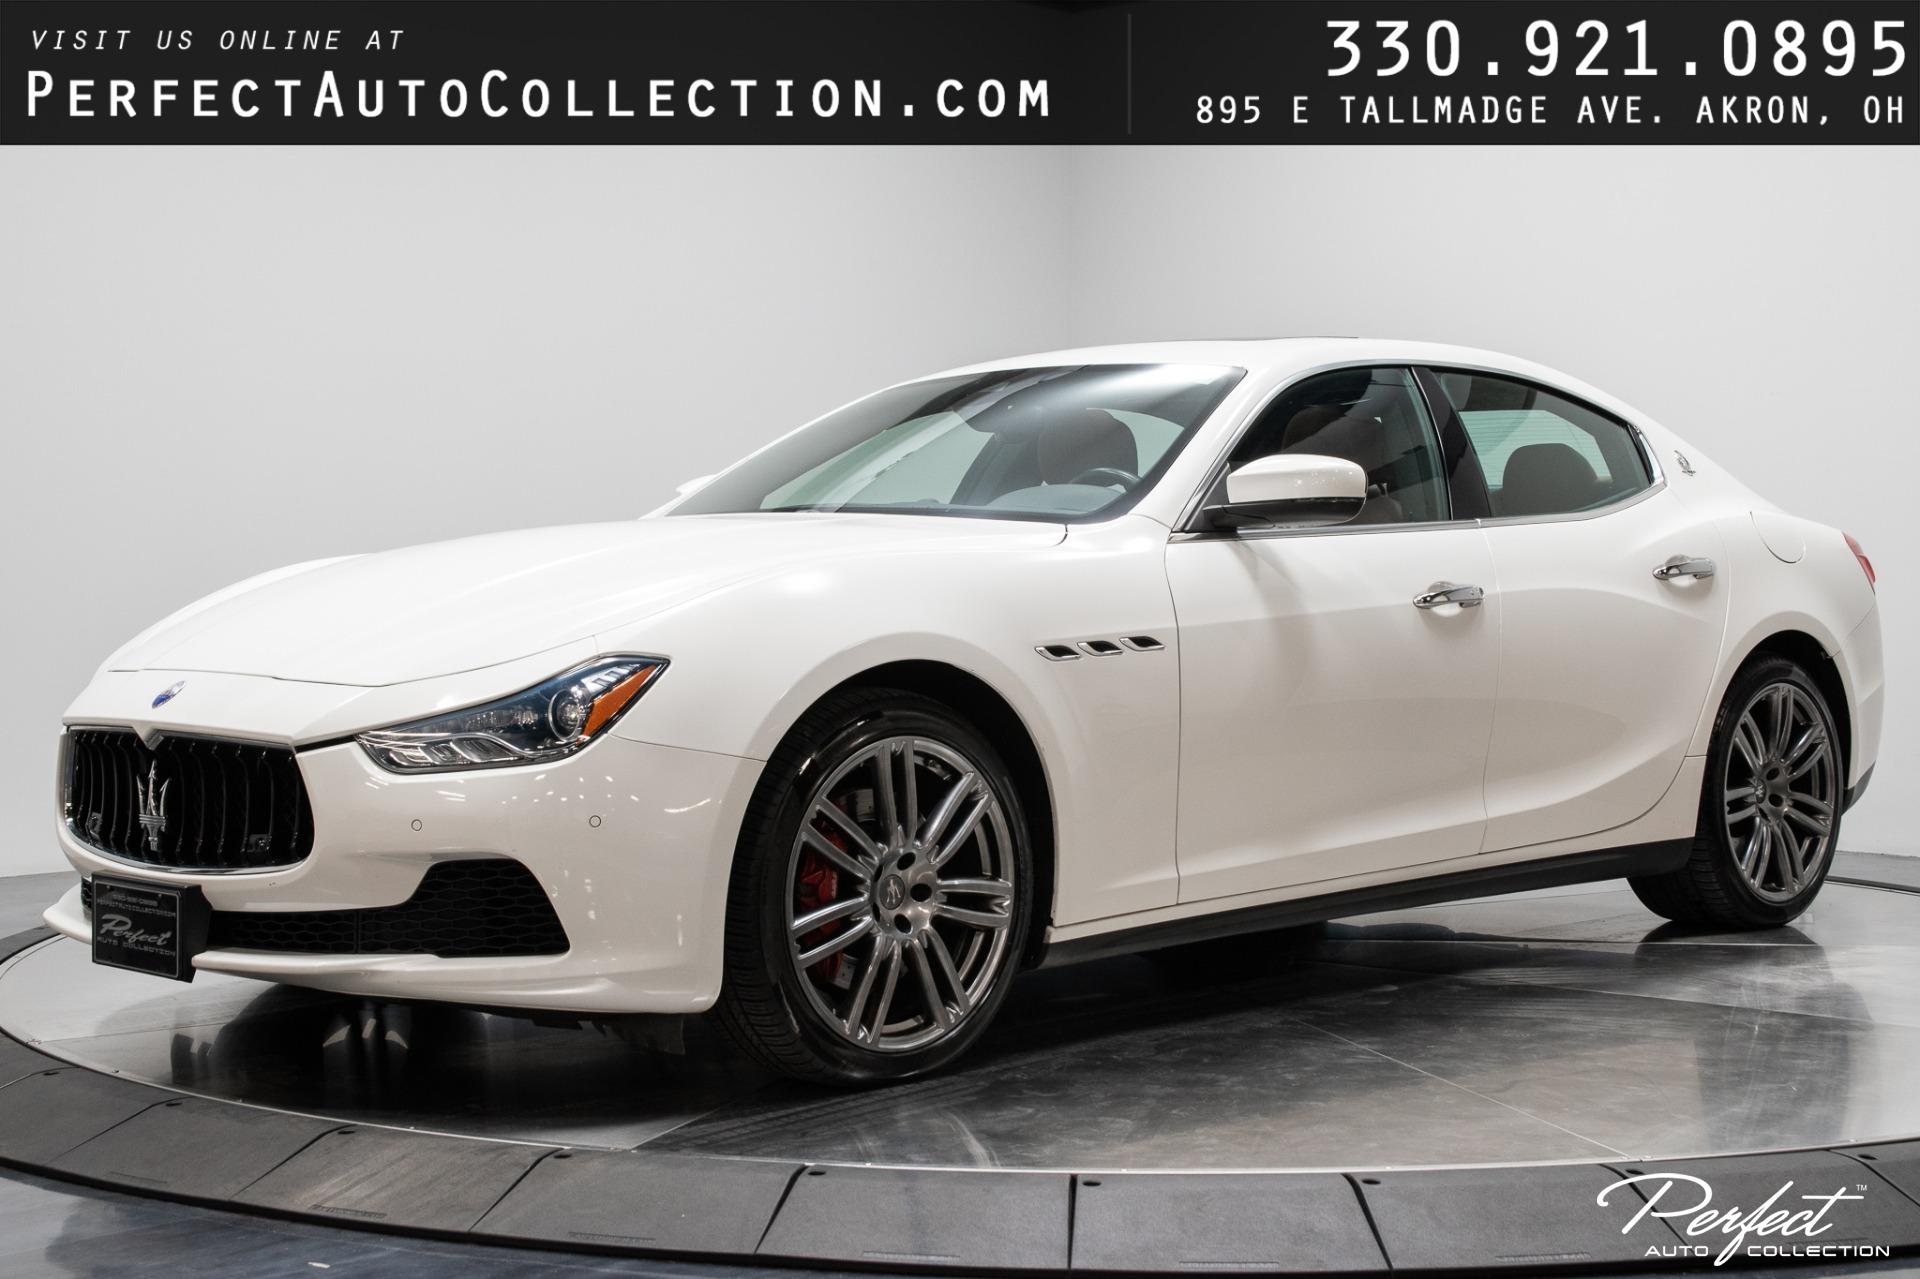 Used 2017 Maserati Ghibli S Q4 for sale $41,493 at Perfect Auto Collection in Akron OH 44310 1